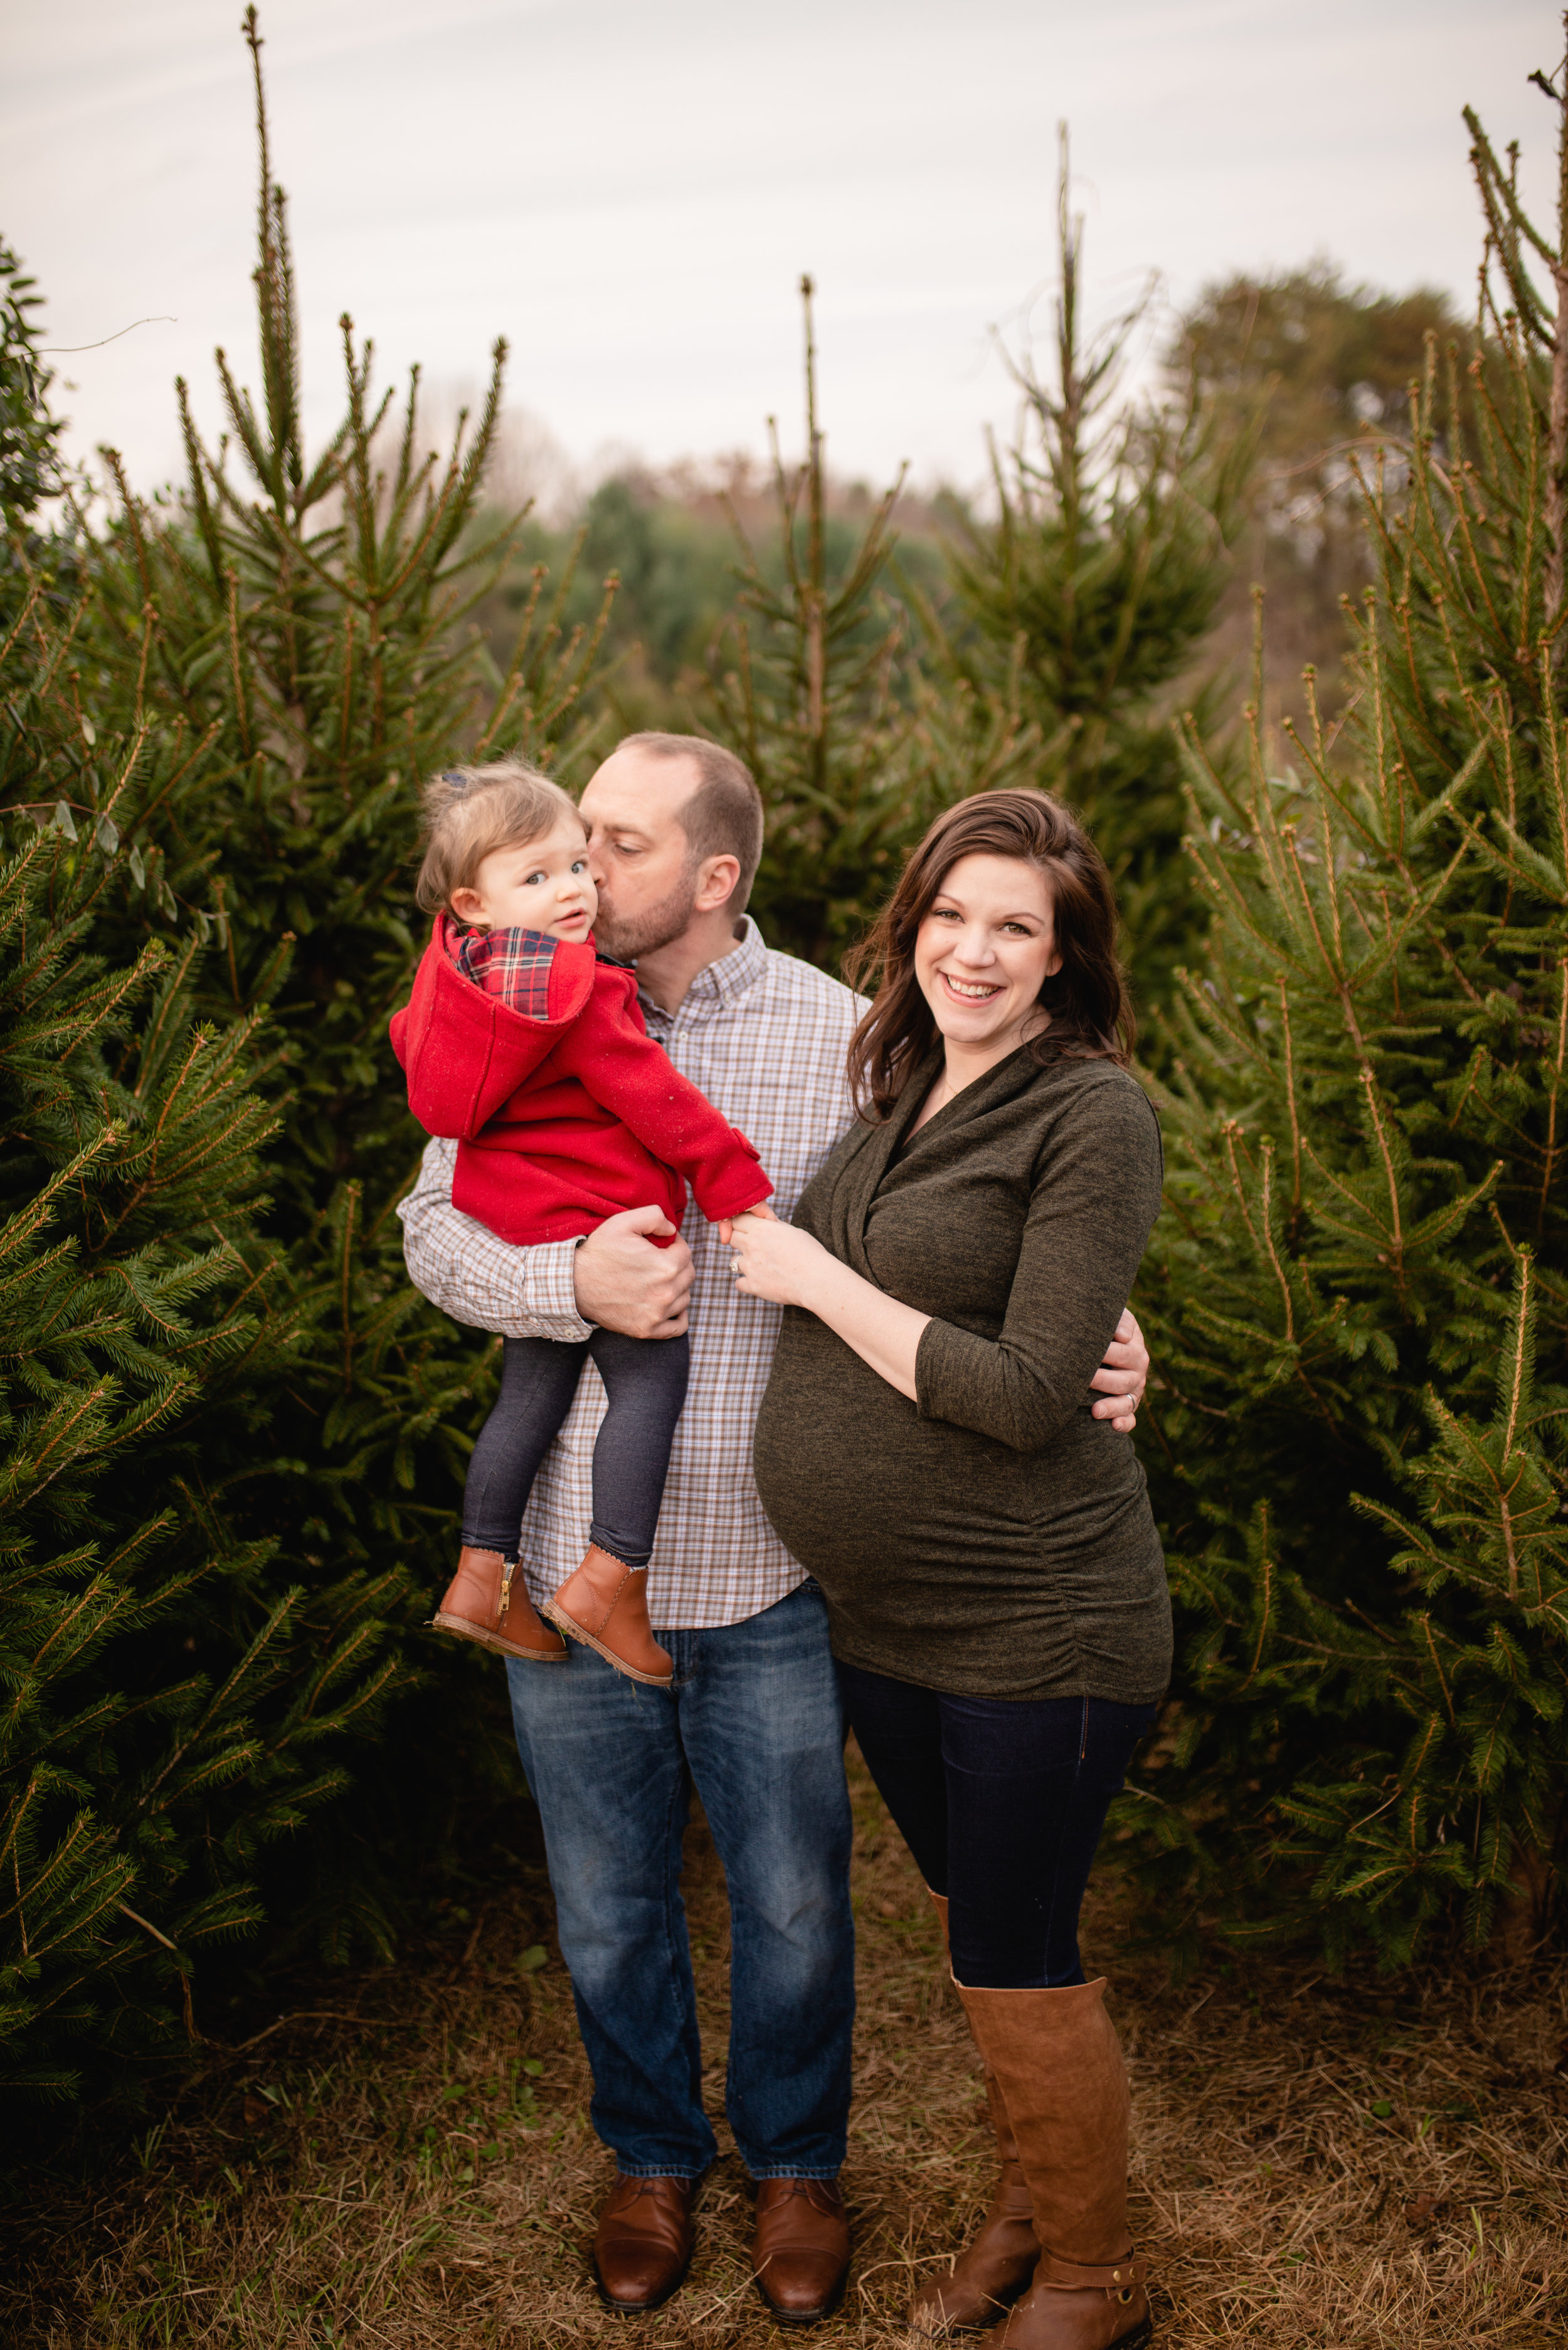 Lifestyle Newborn and Family Photography | Washington DC • Northern Virginia